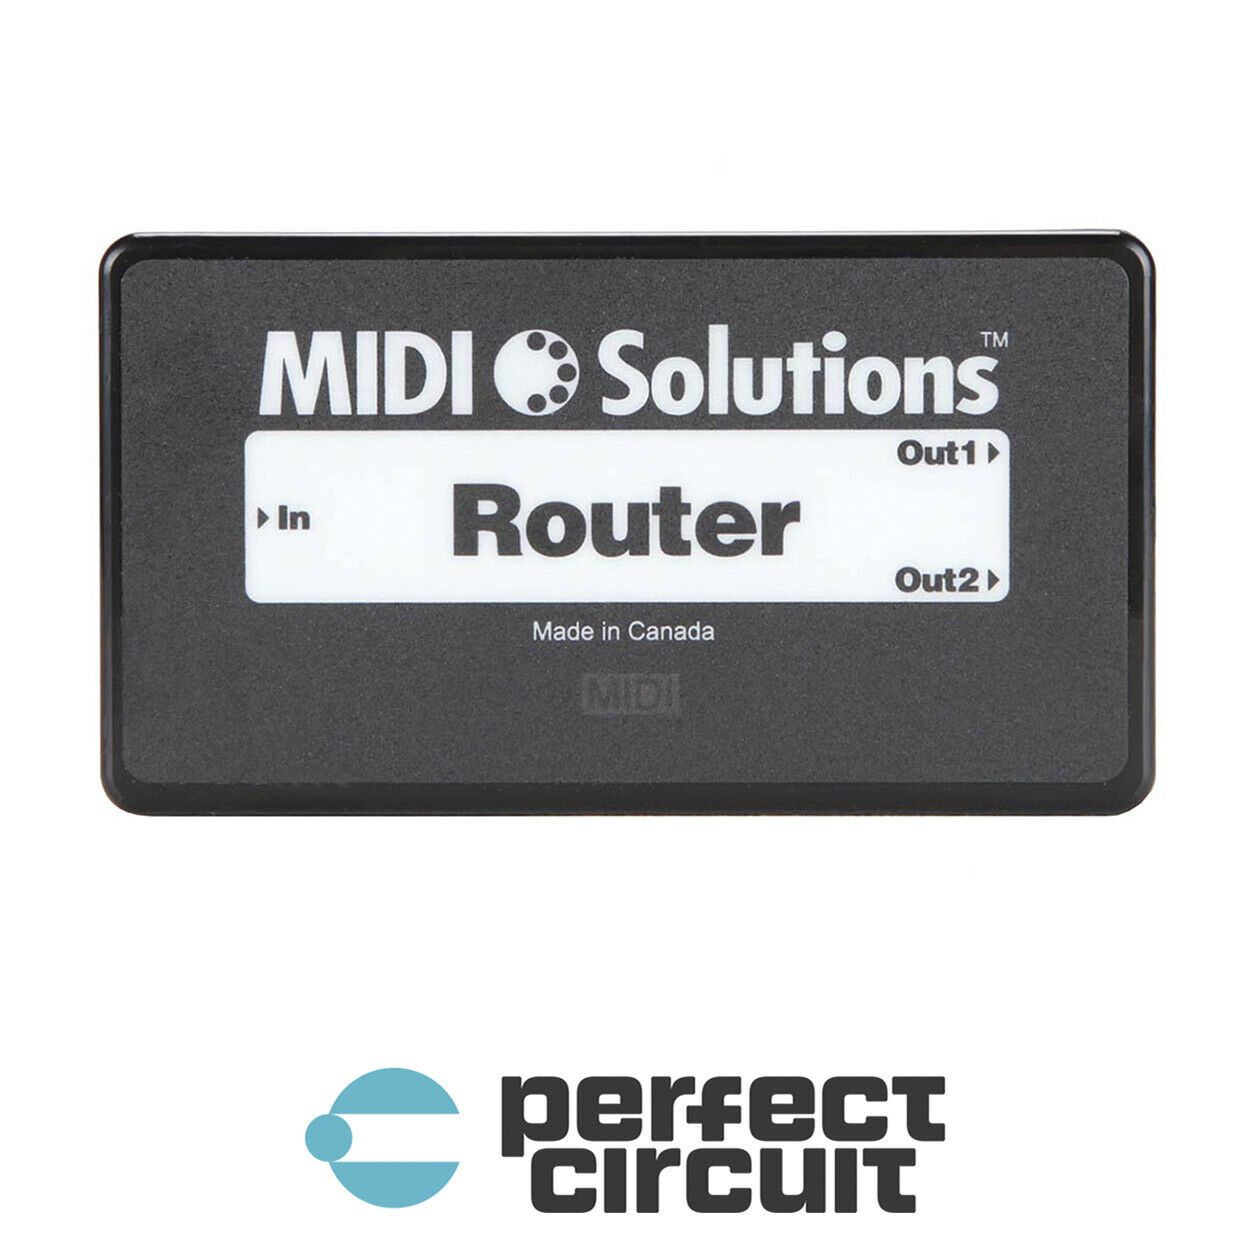 MIDI Solutions Router MIDI Data Filter INTERFACE - NEW - PERFECT CIRCUIT